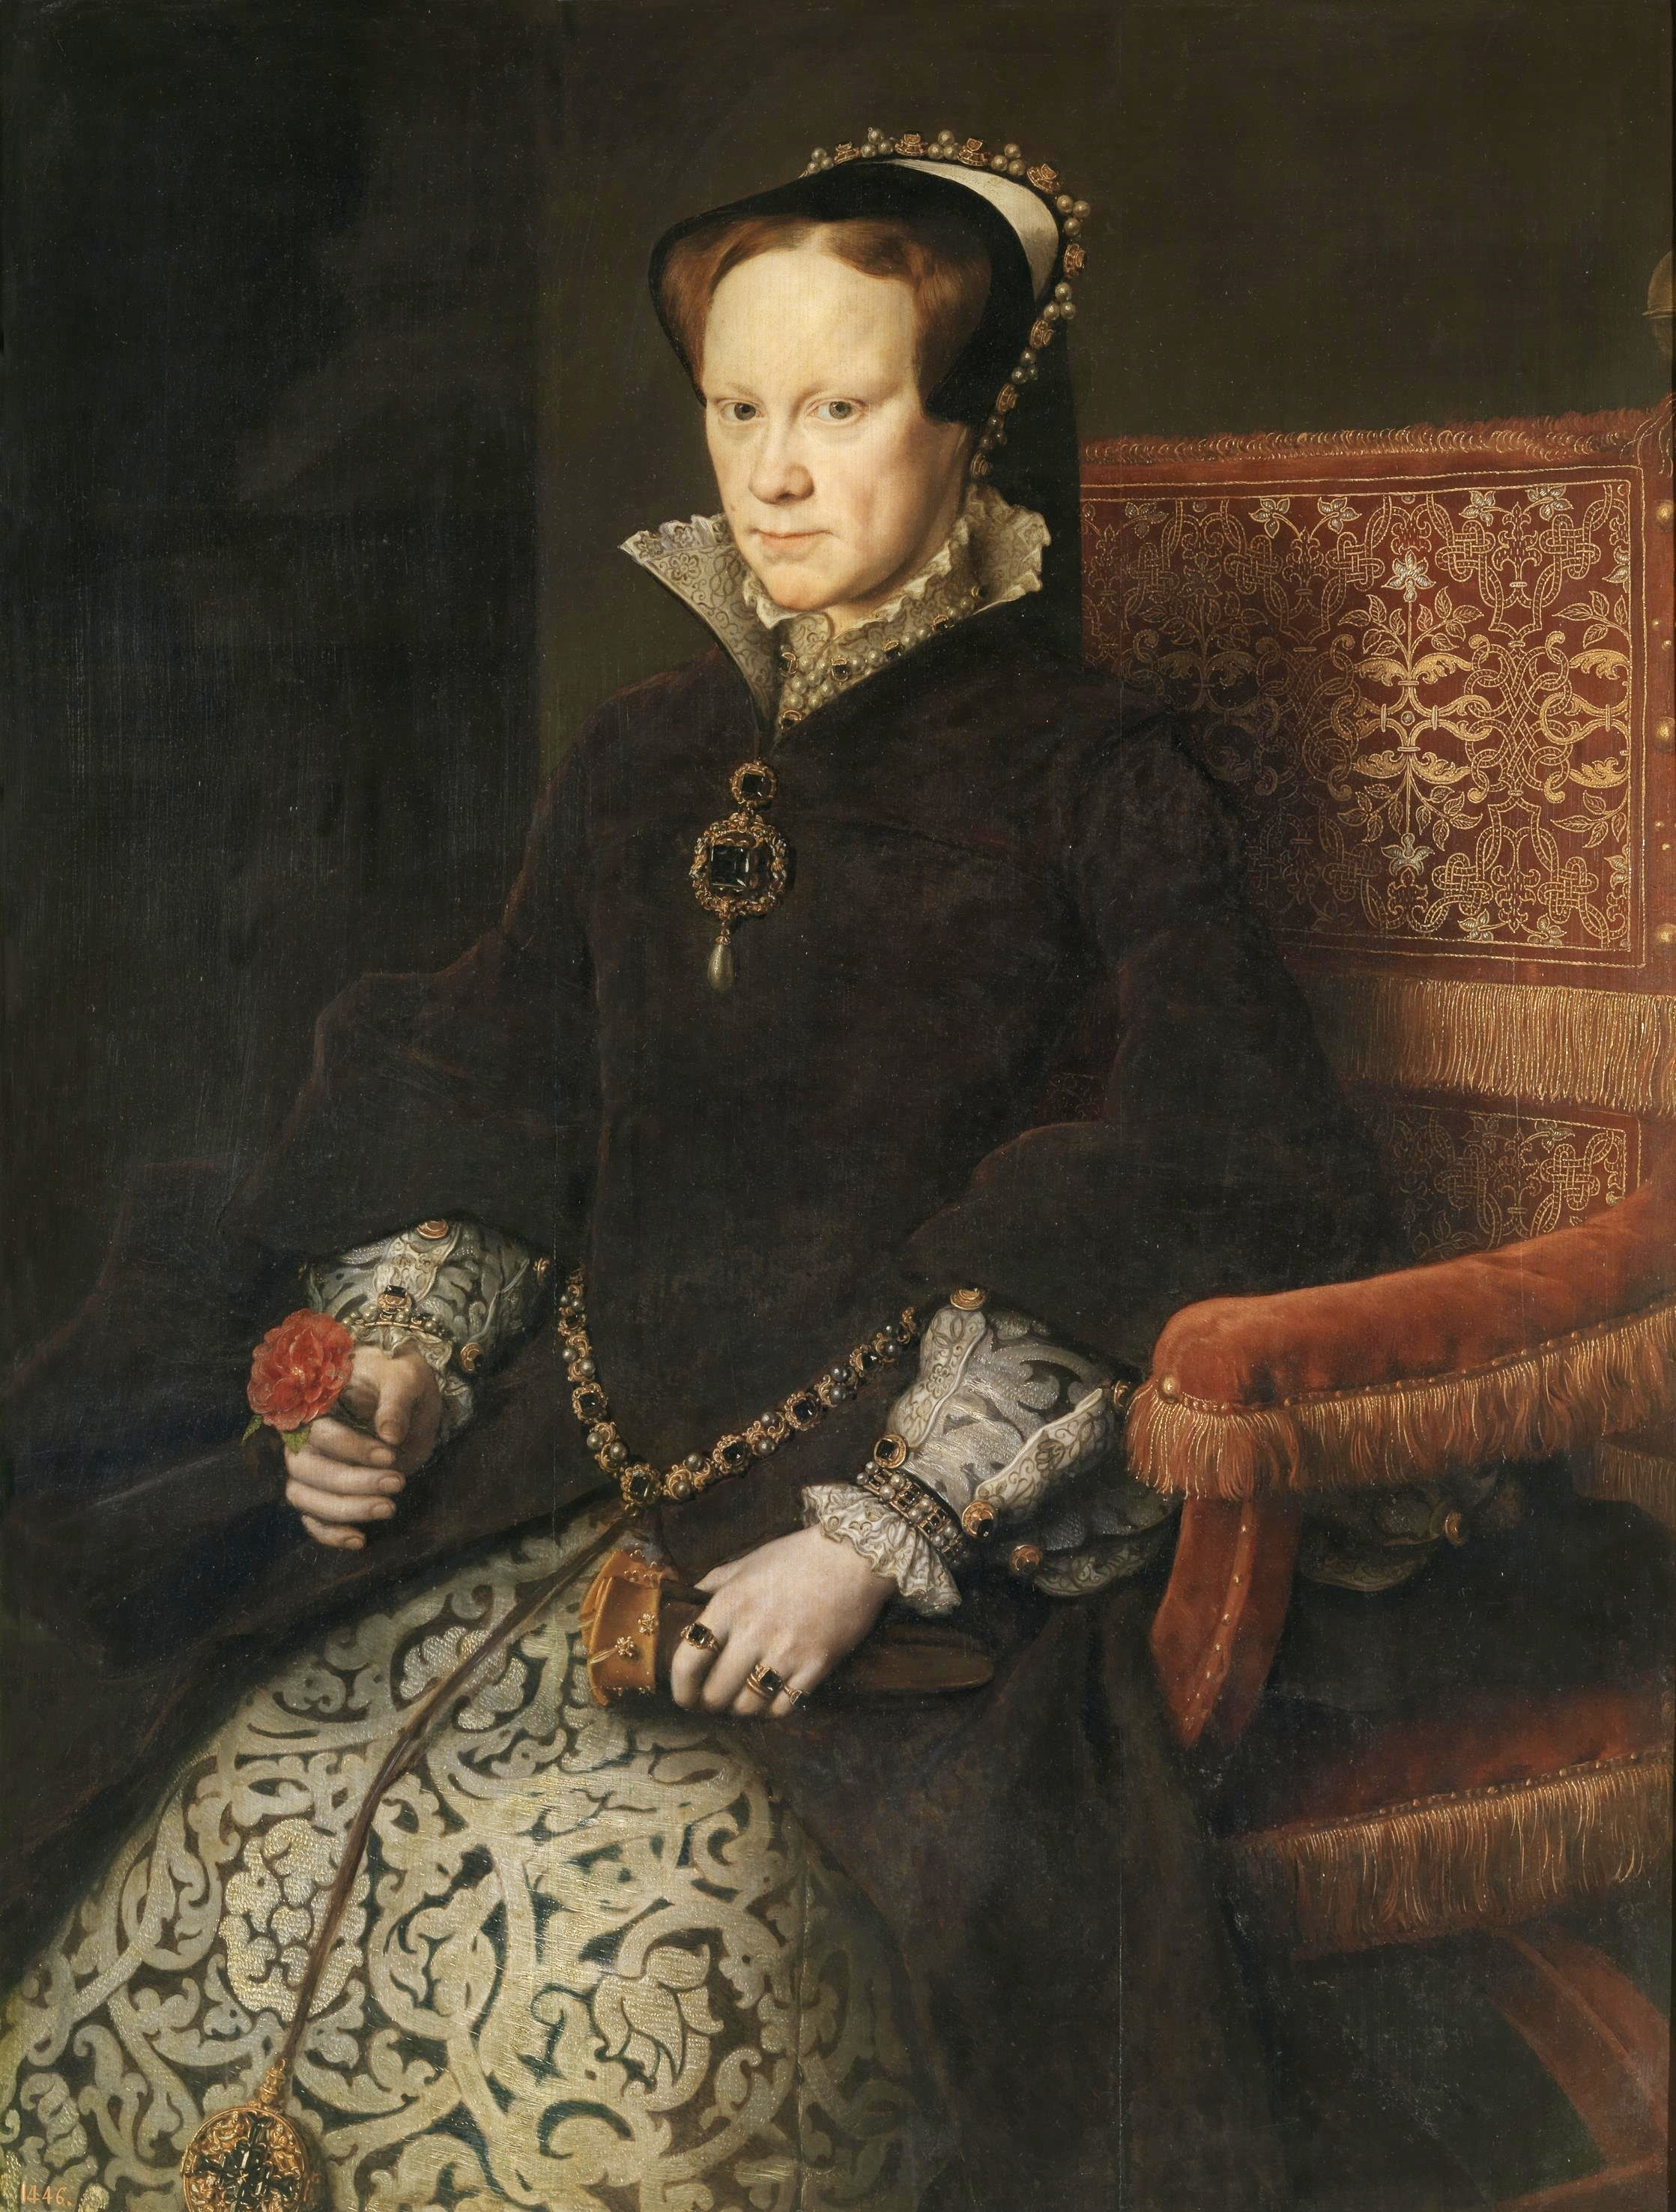 http://upload.wikimedia.org/wikipedia/commons/e/e2/Mary_I_of_England.jpg